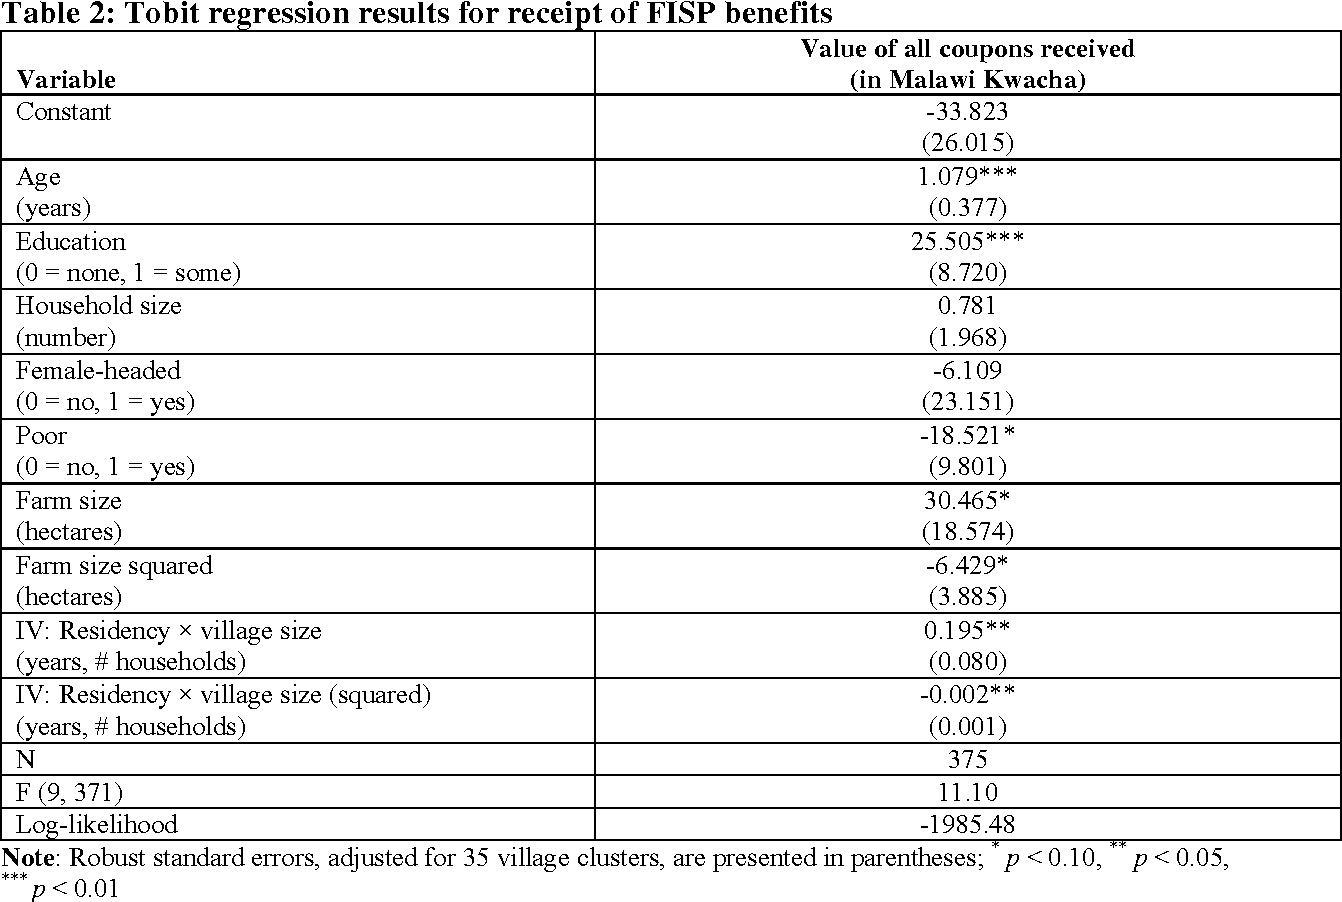 Table 2: Tobit regression results for receipt of FISP benefits